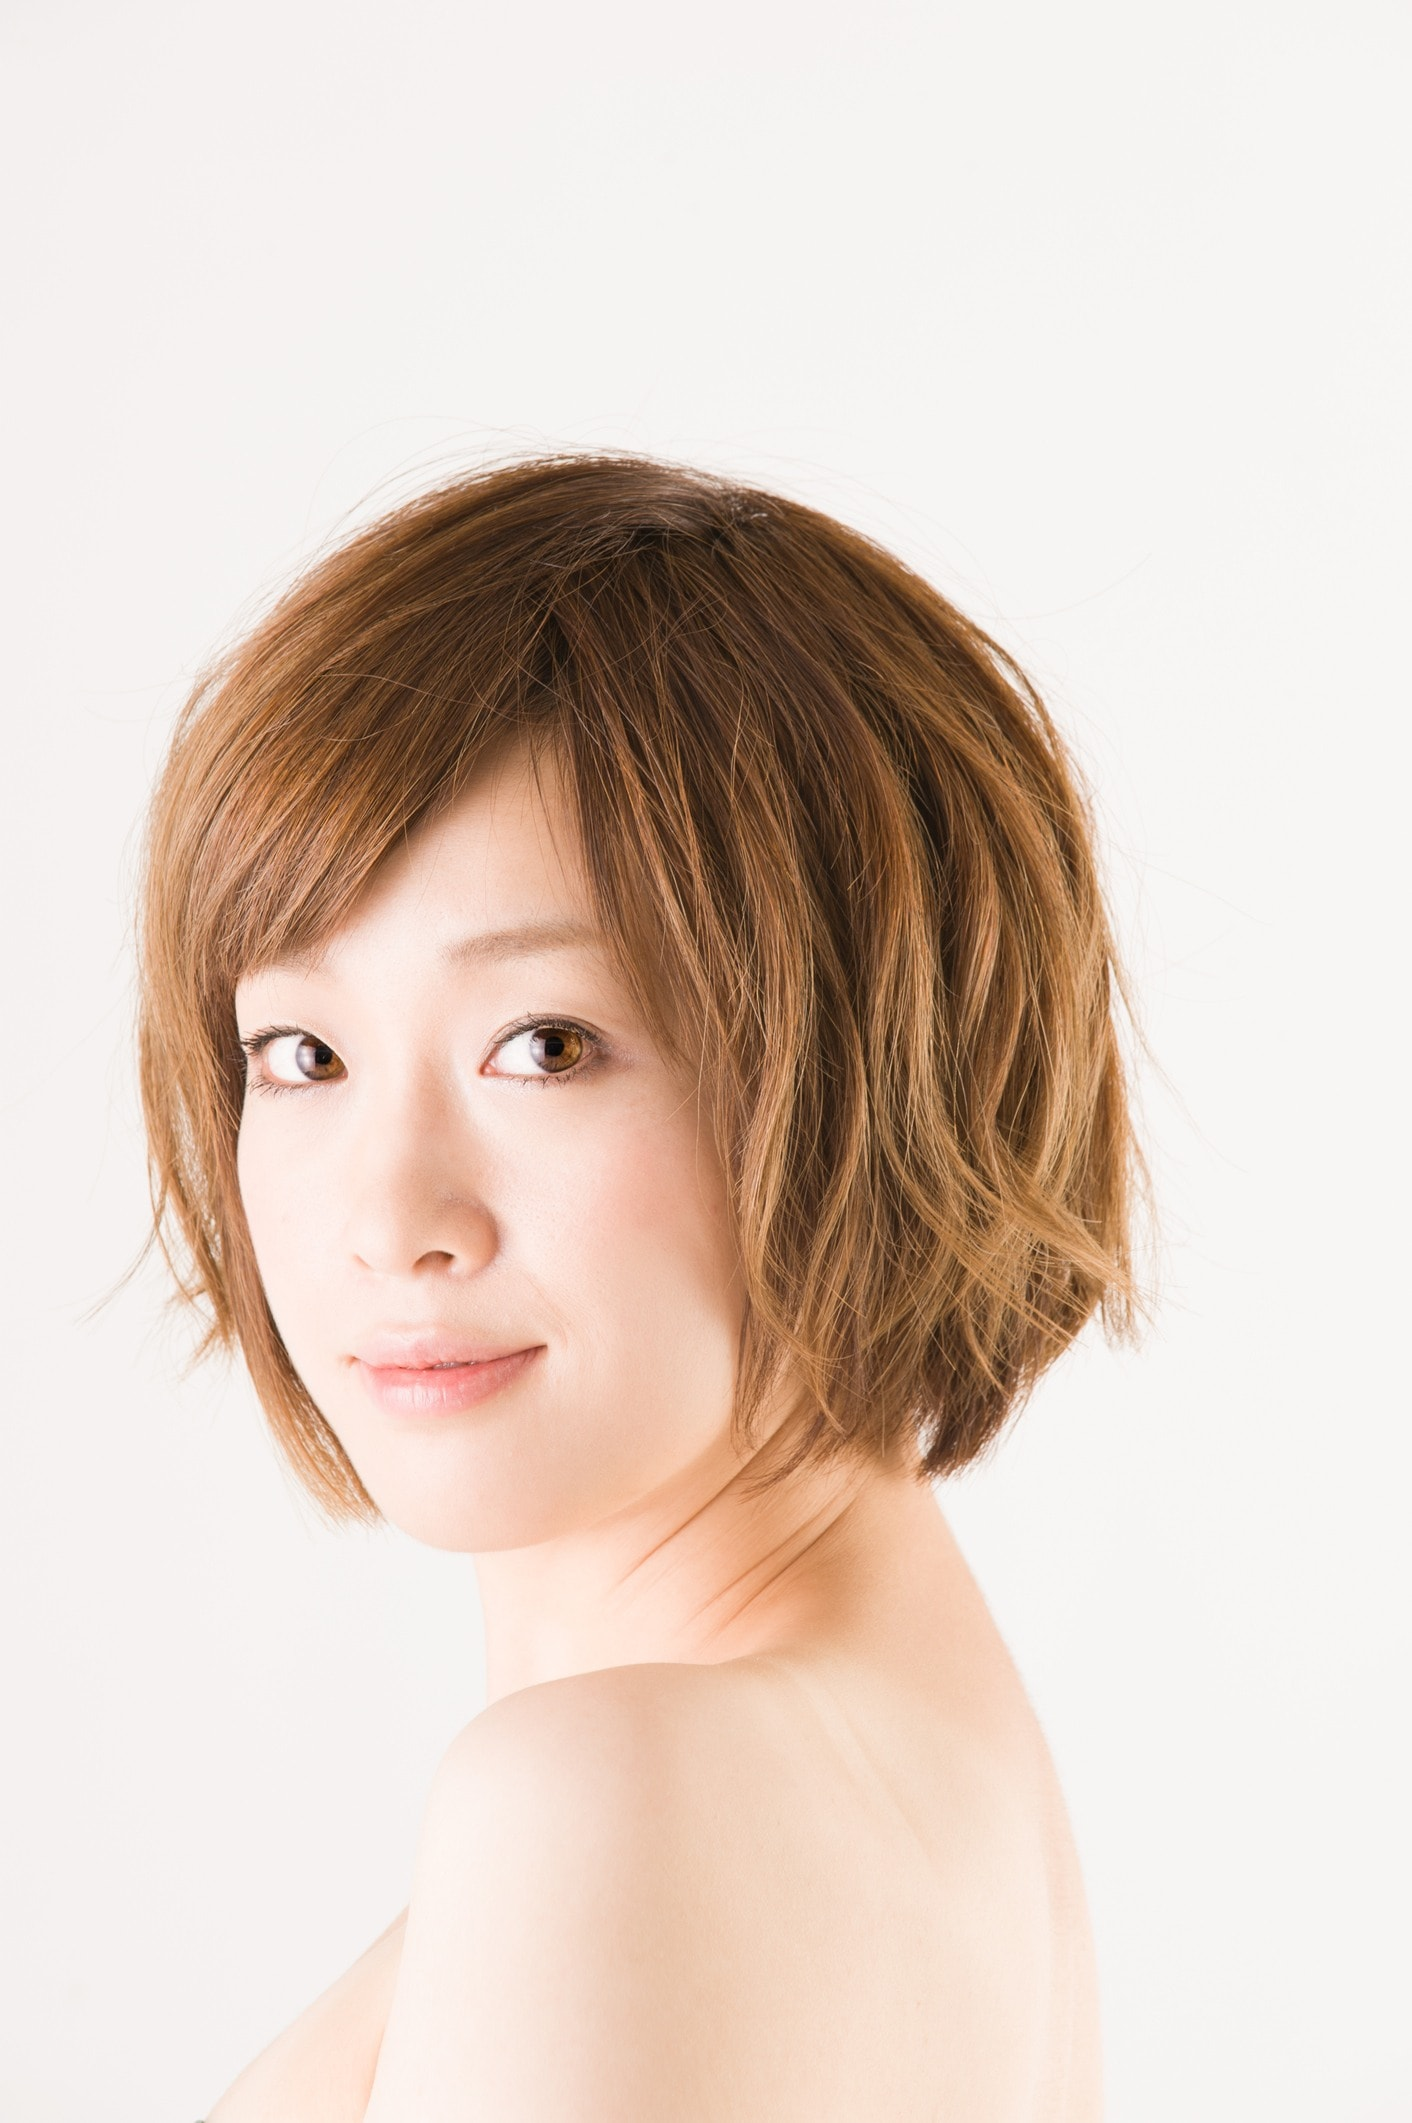 Messy down do: Japanese hairstyles